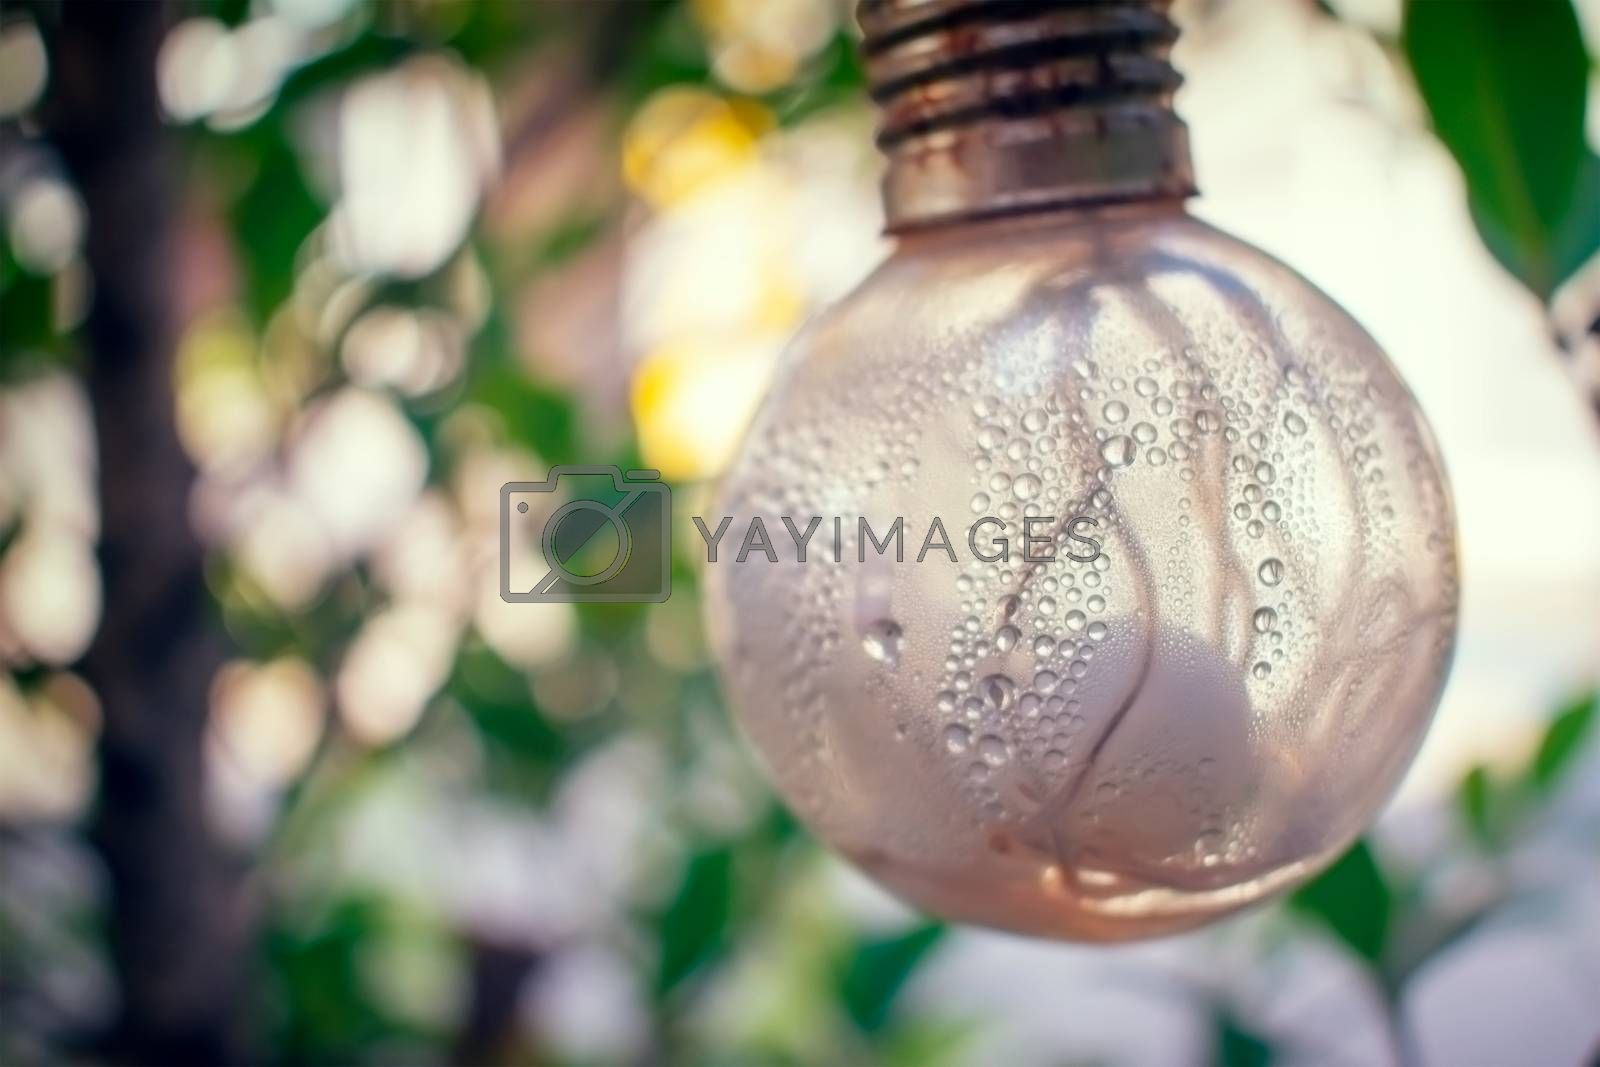 Condensation and Moisture Inside a Light Bulb